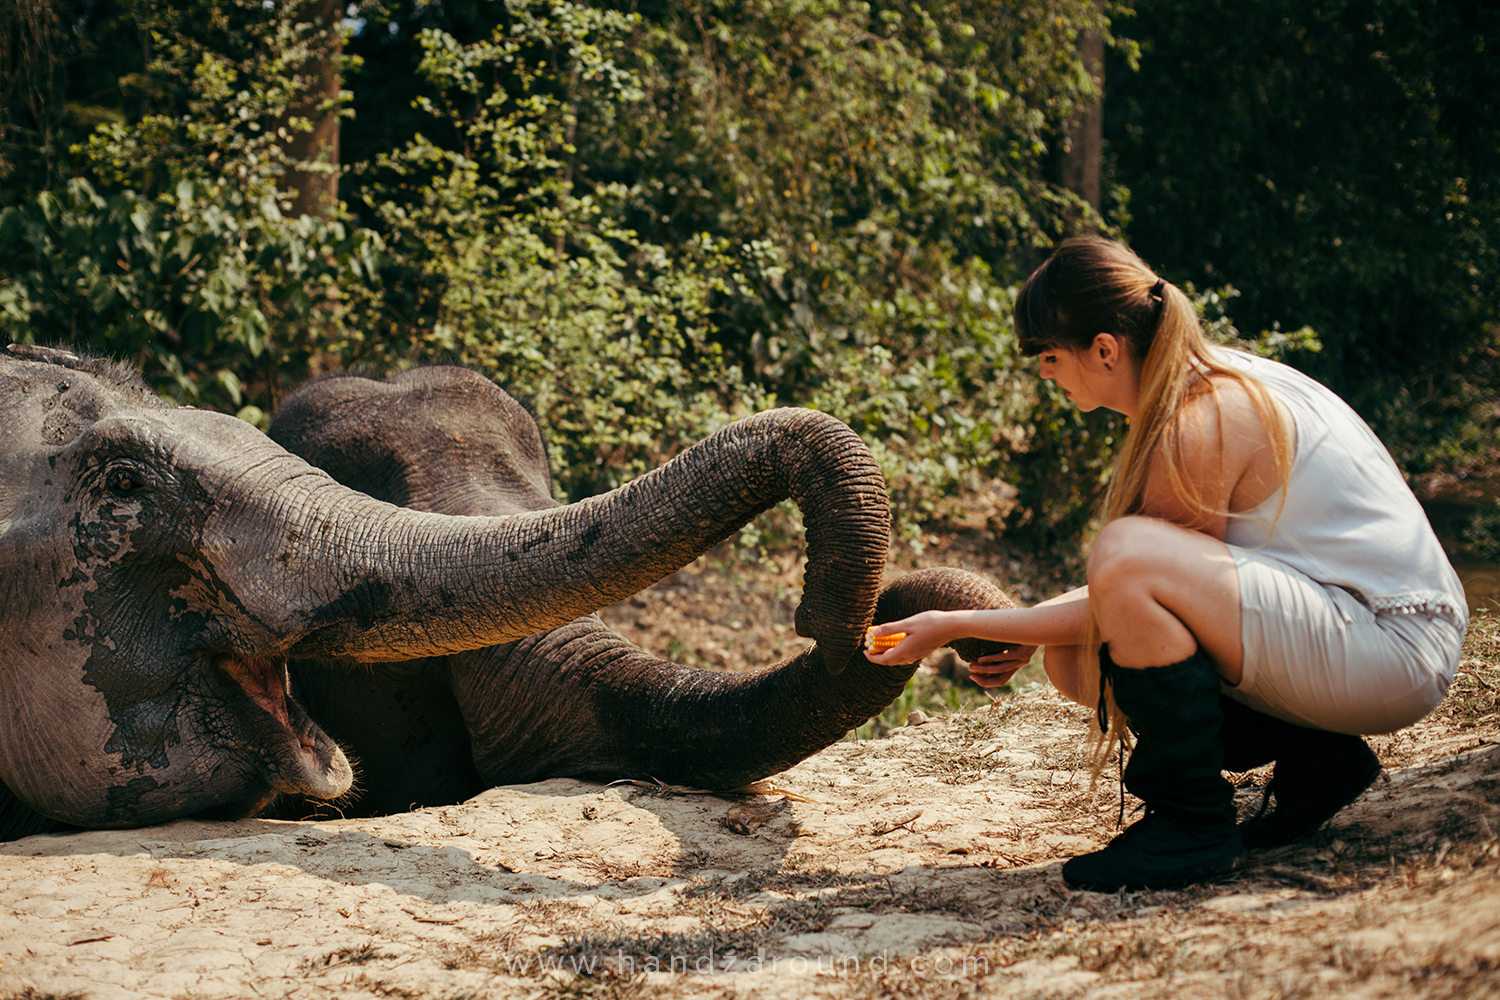 Hanna & elephants at Mandalao Elephant Sanctuary